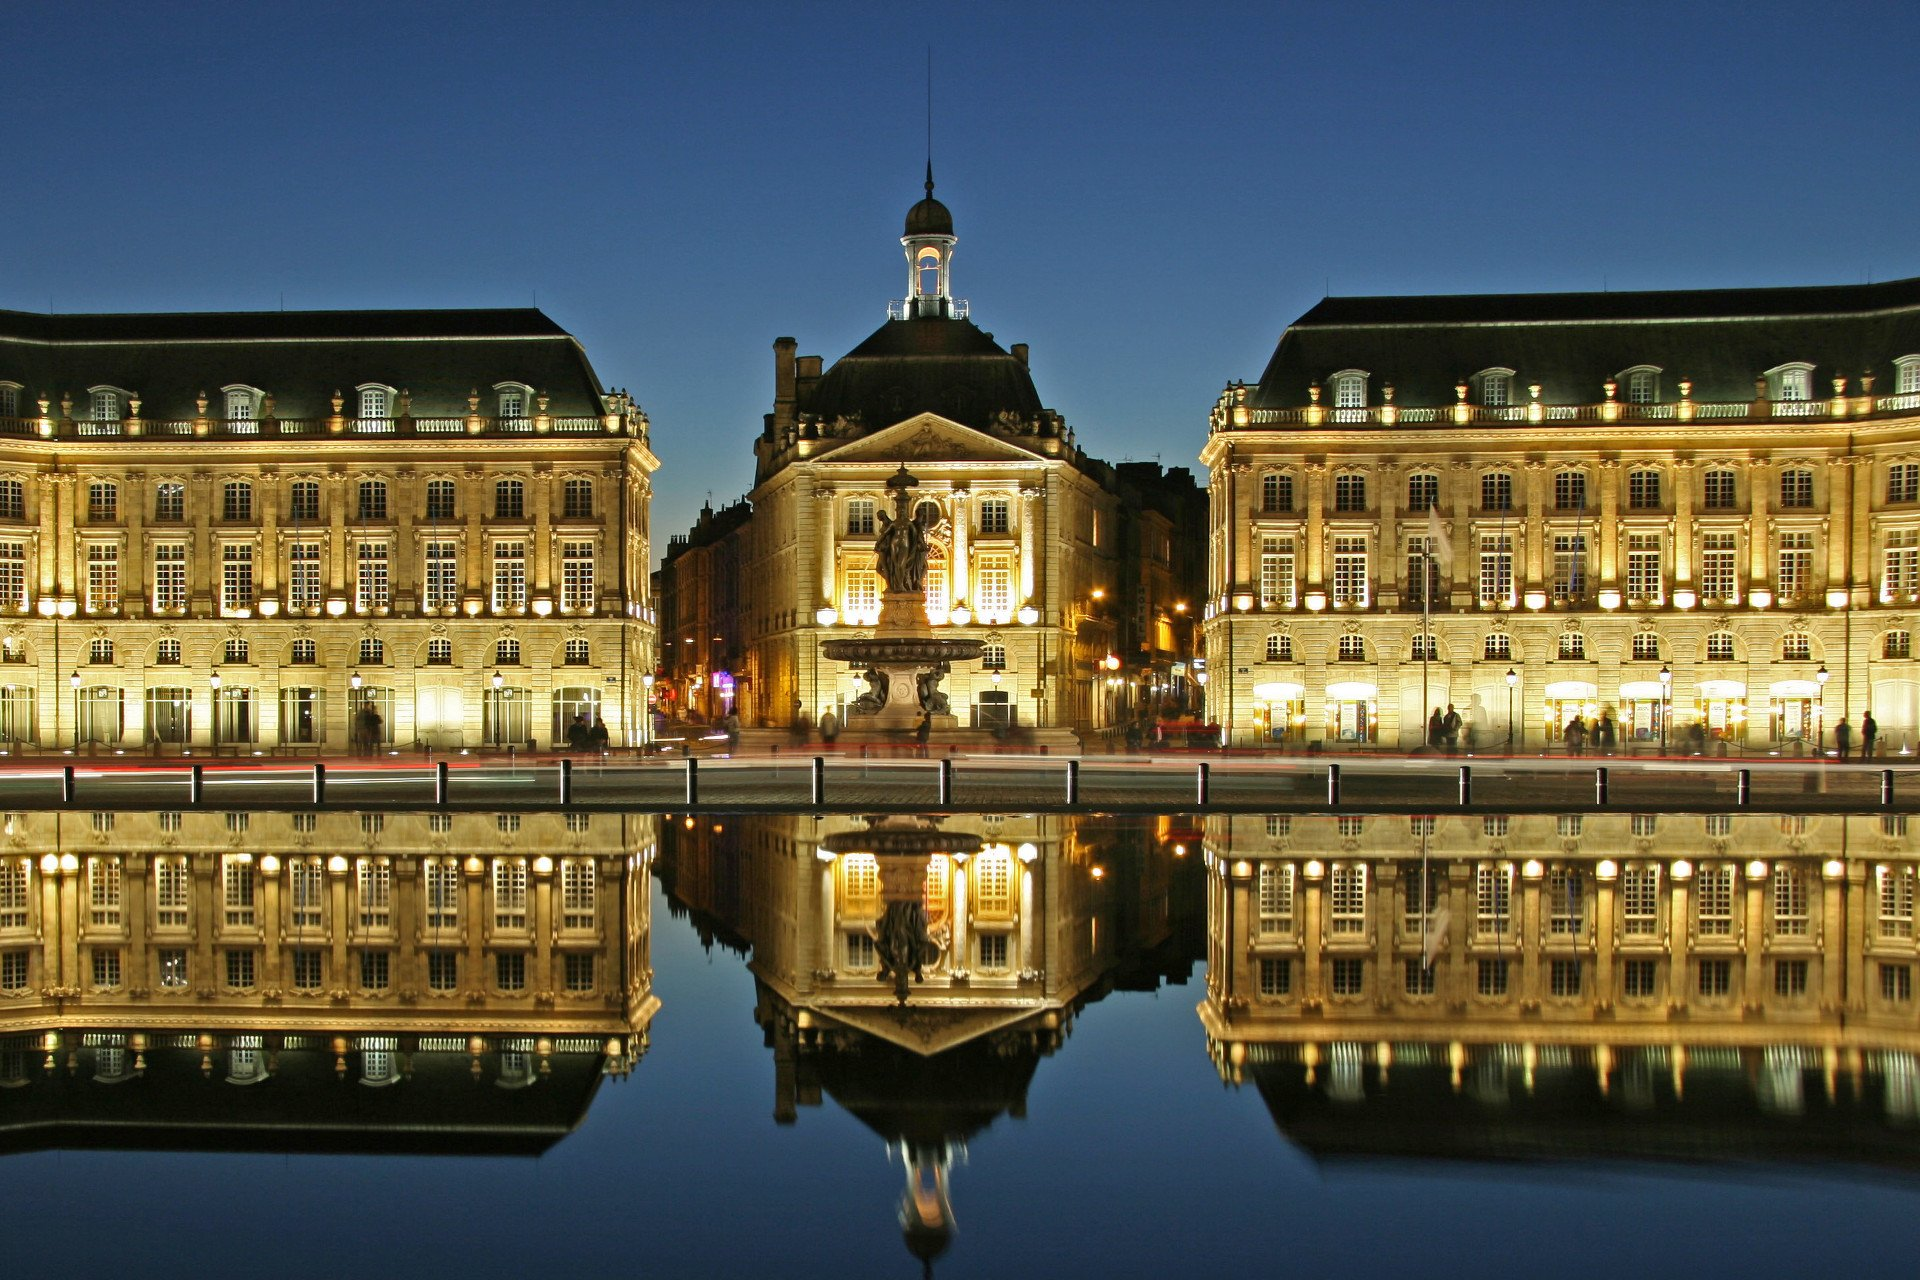 Place de la Bourse reflecting into the water mirror